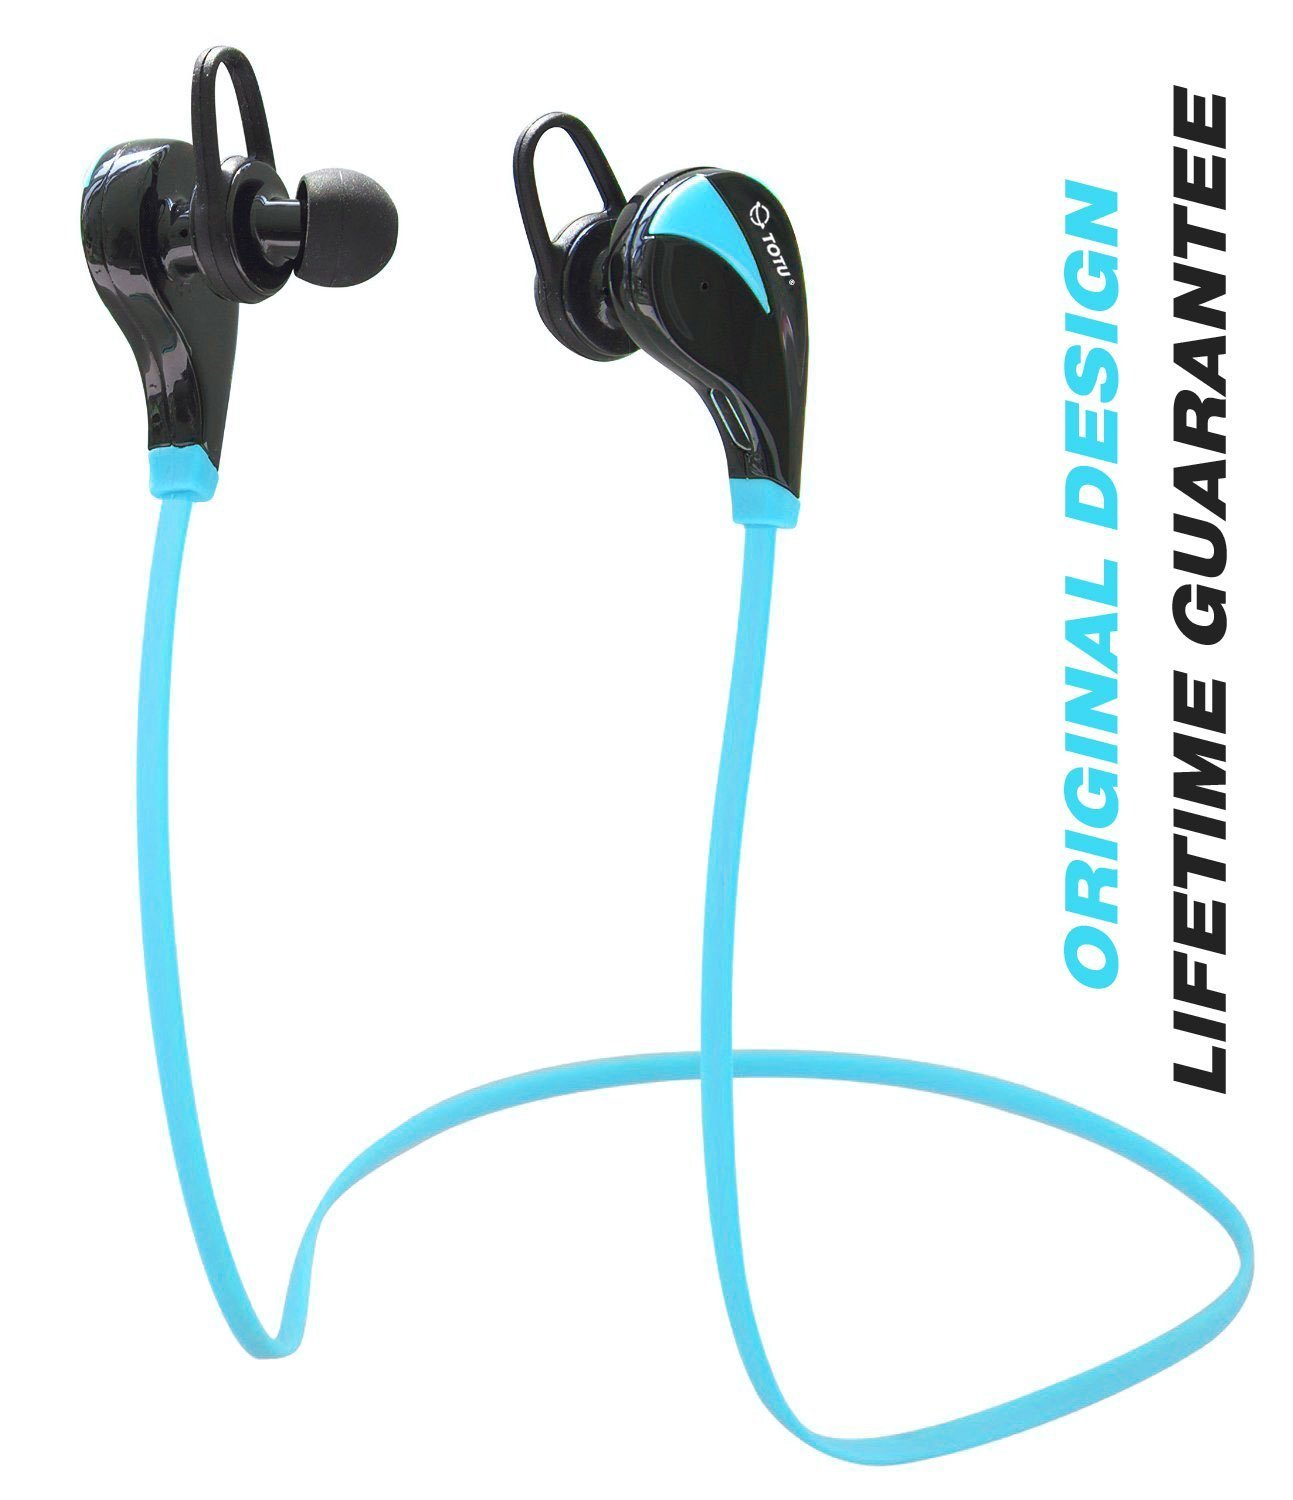 bluetooth headphones totu wireless bluetooth stereo earbuds sweatproof runnin ebay. Black Bedroom Furniture Sets. Home Design Ideas